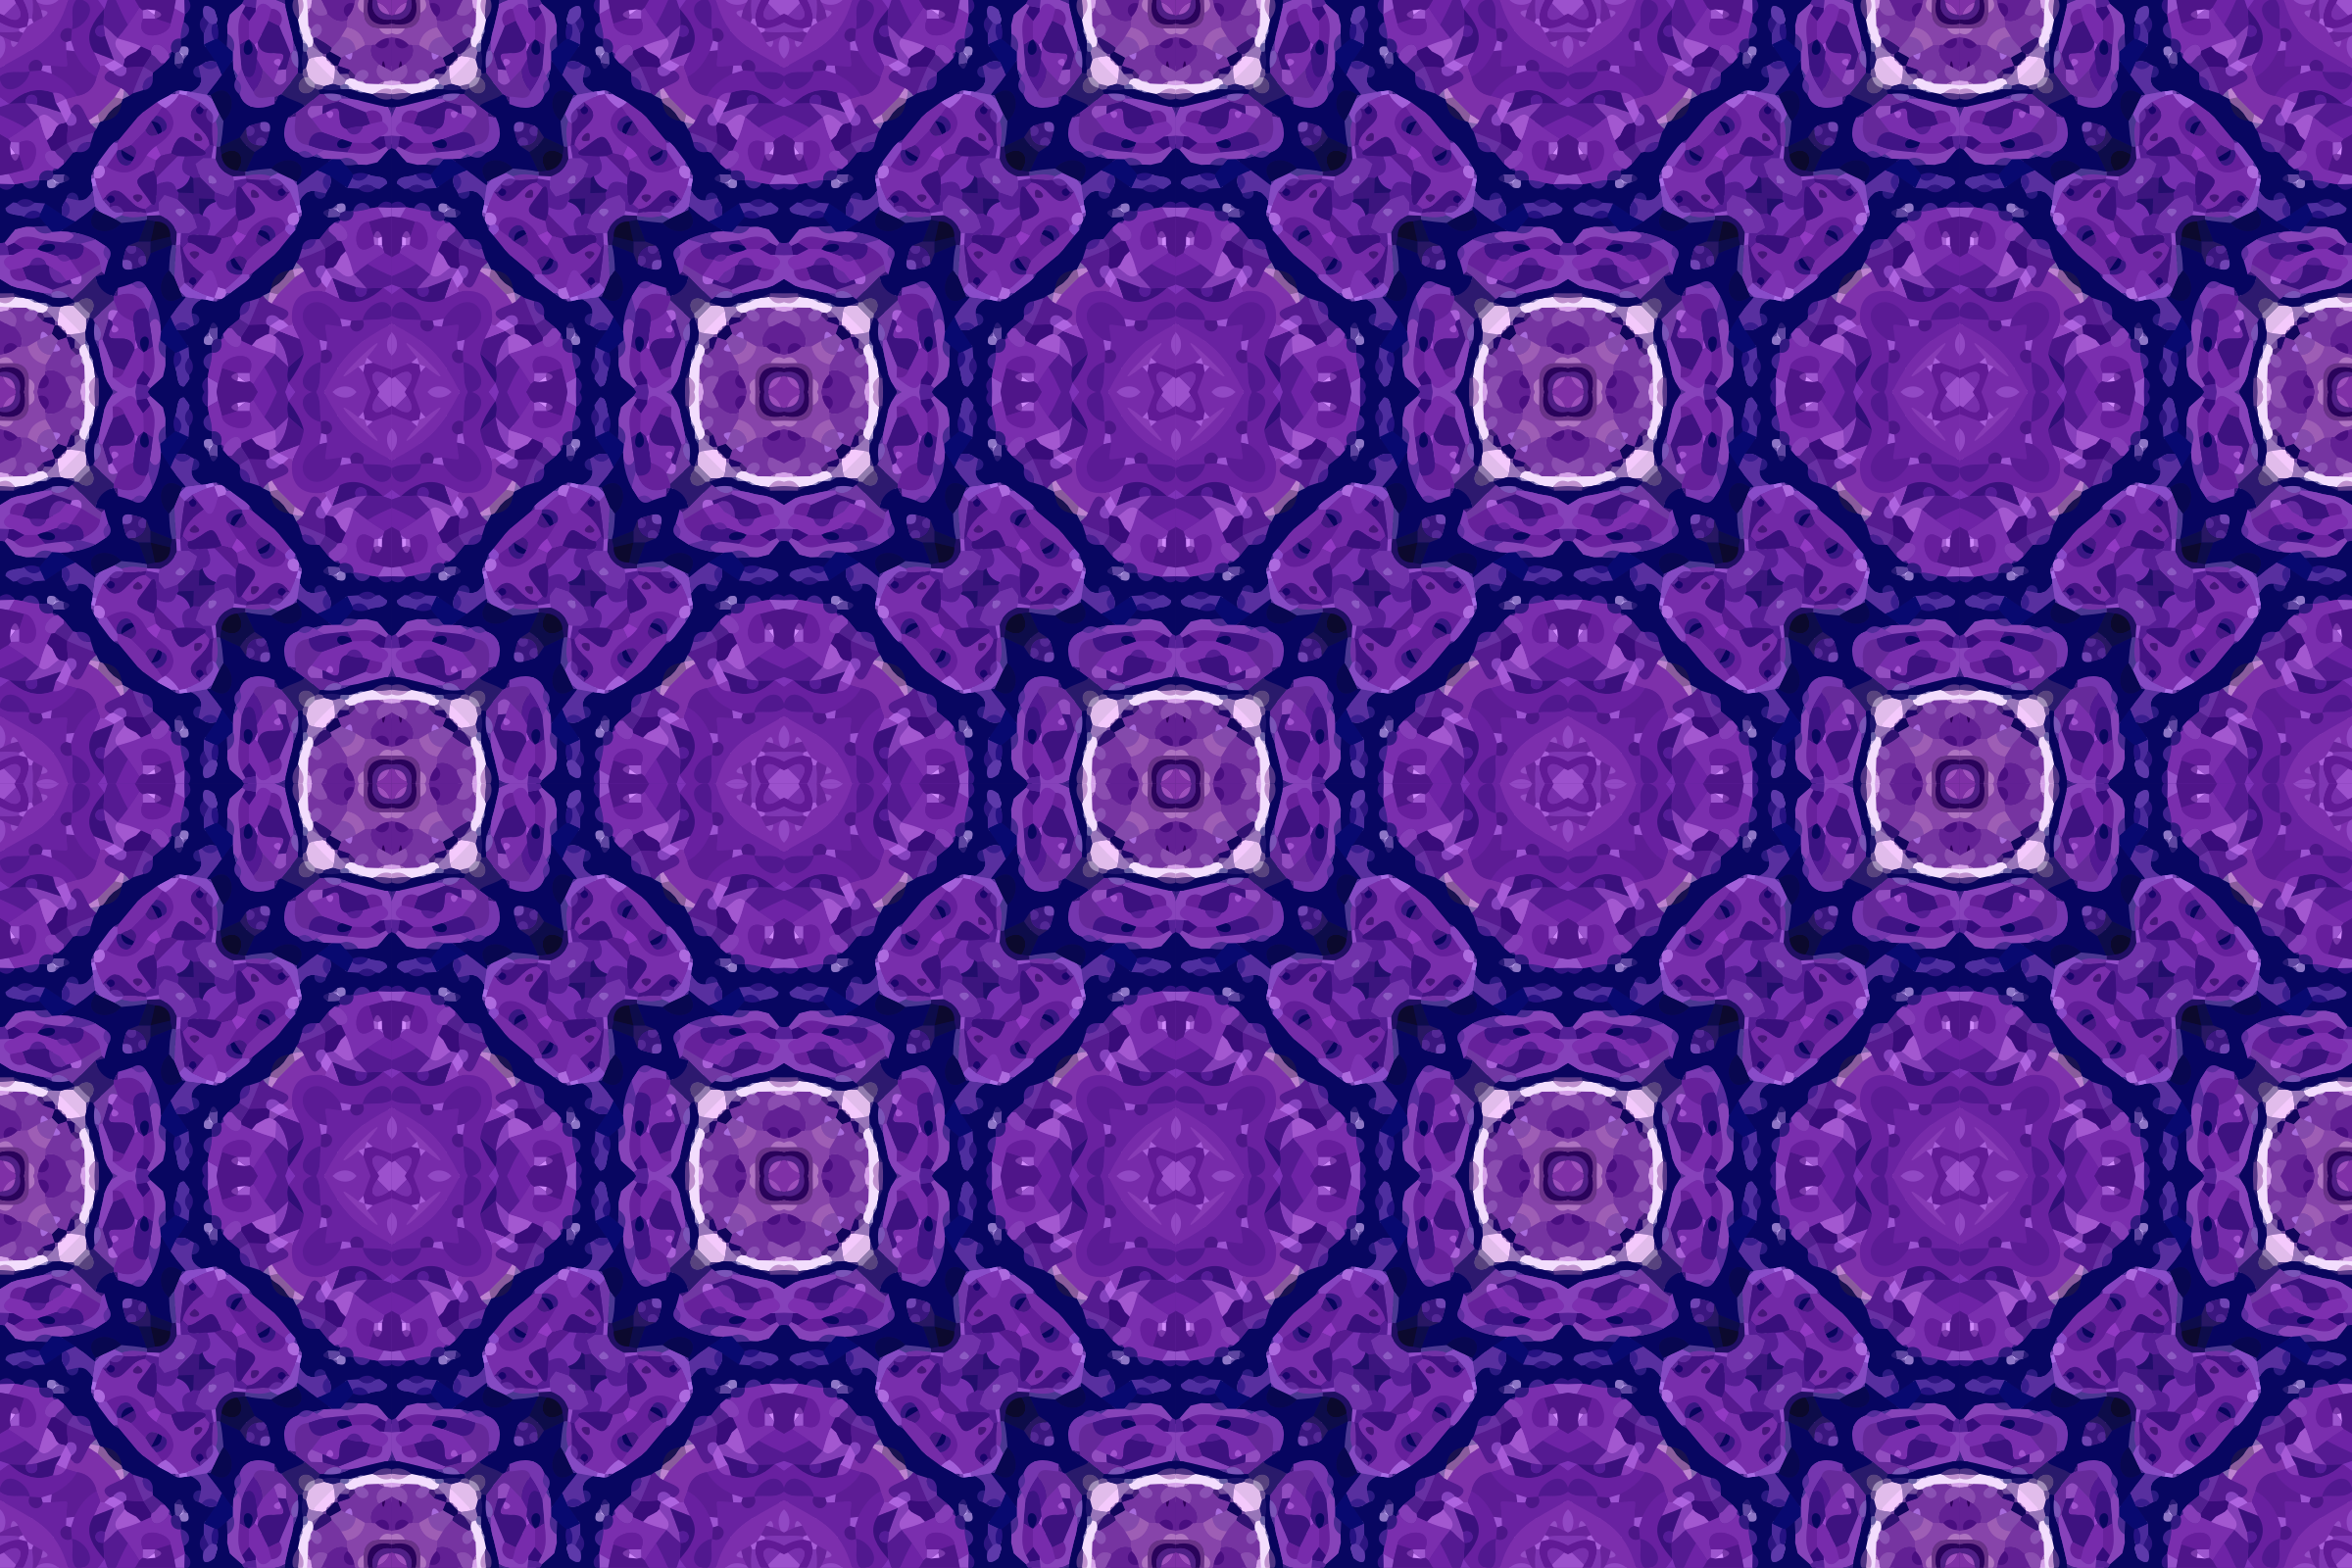 Background pattern 185 (colour 3) by Firkin